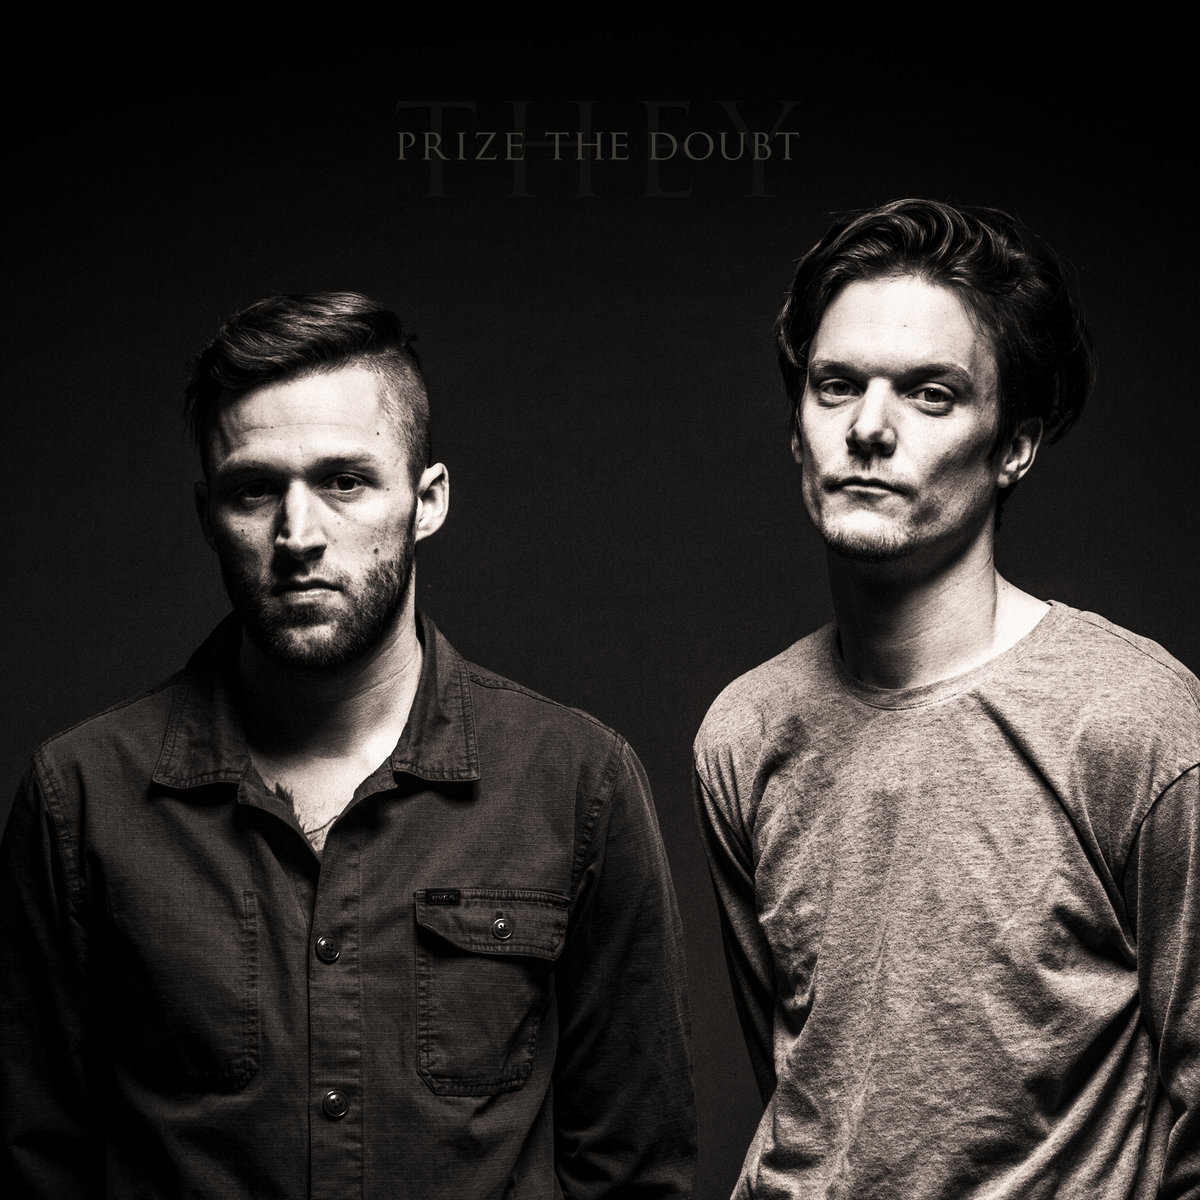 Prize The Doubt - They (2018)